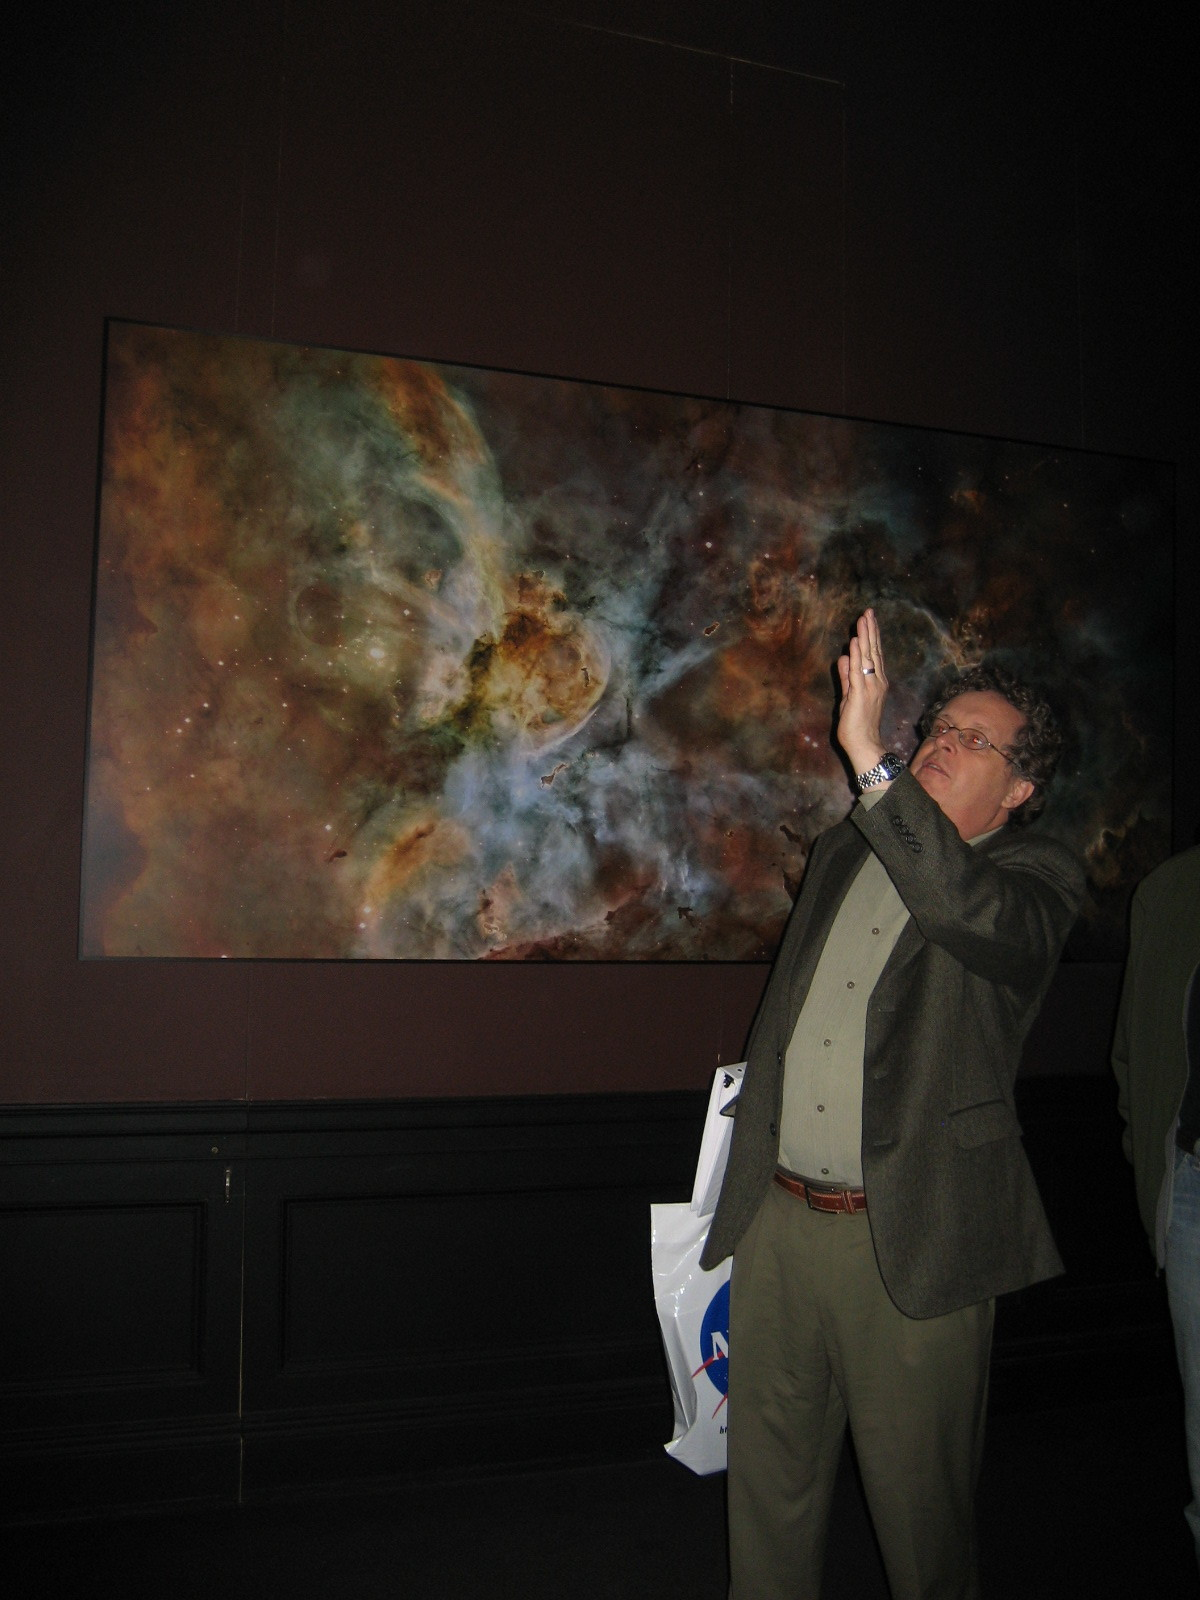 Dr. Matt Mountain, then director of the Space Telescope Science Institute, talks to student curators of  Mapping the Cosmos: Images from the Hubble Space Telescope  at the Walters Art Museum in 2008.